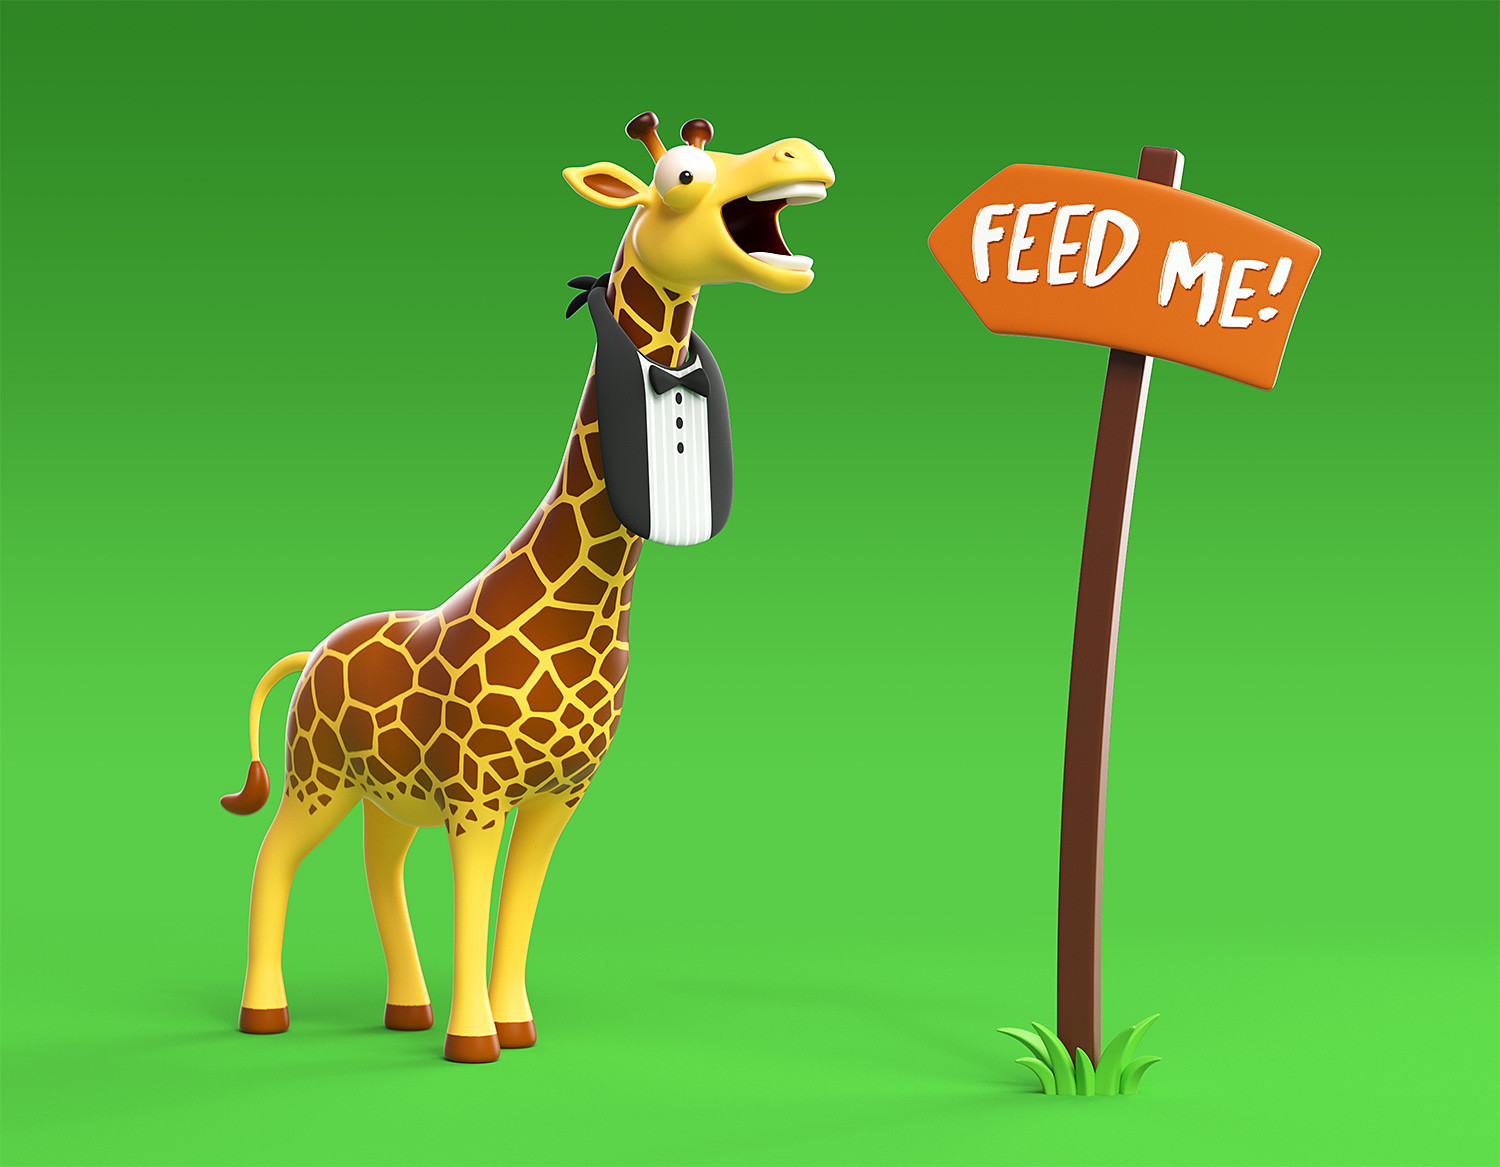 Things to do in Cleveland - Feed the Giraffe